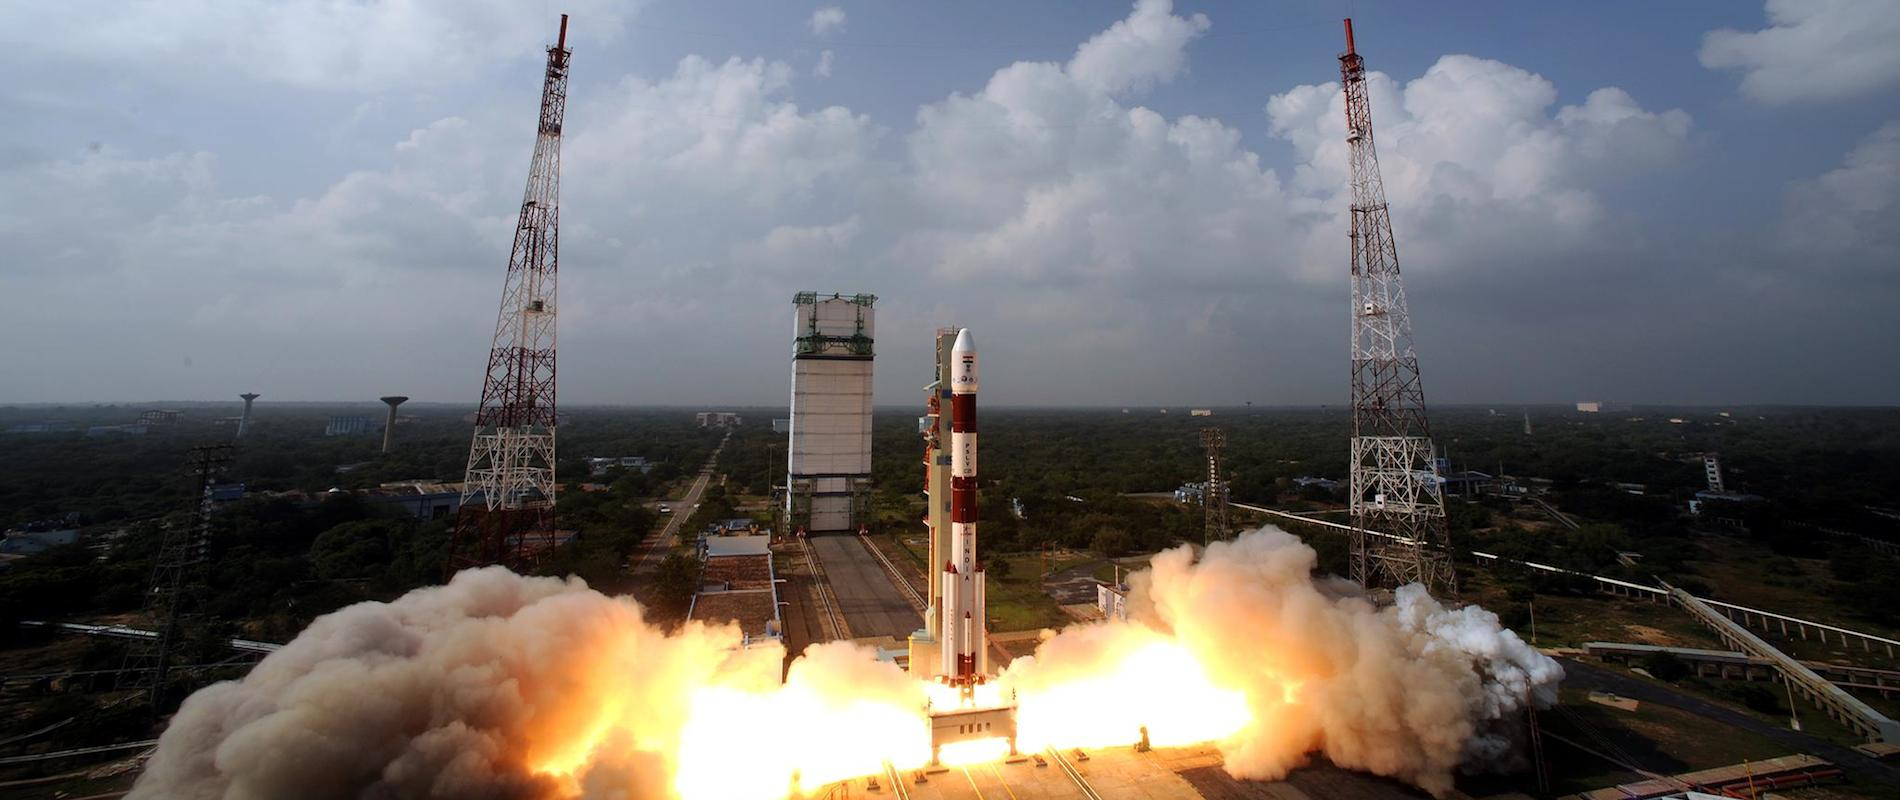 India's maiden mission to Mars